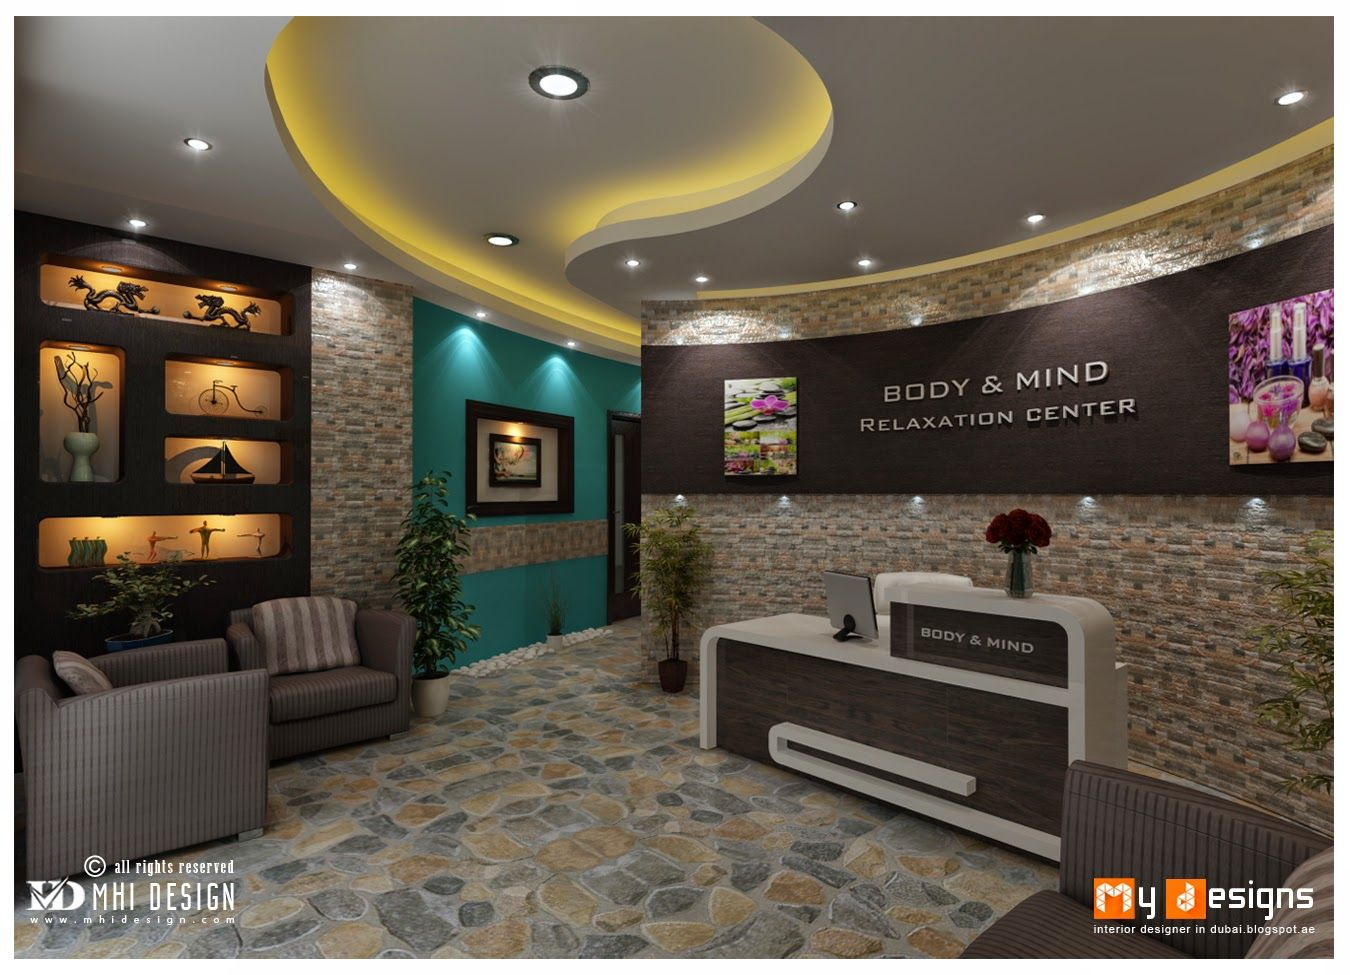 Dubai Beauty Salons Interior Design Proposal For One Of MHI DESIGN Client.  Find More Interior